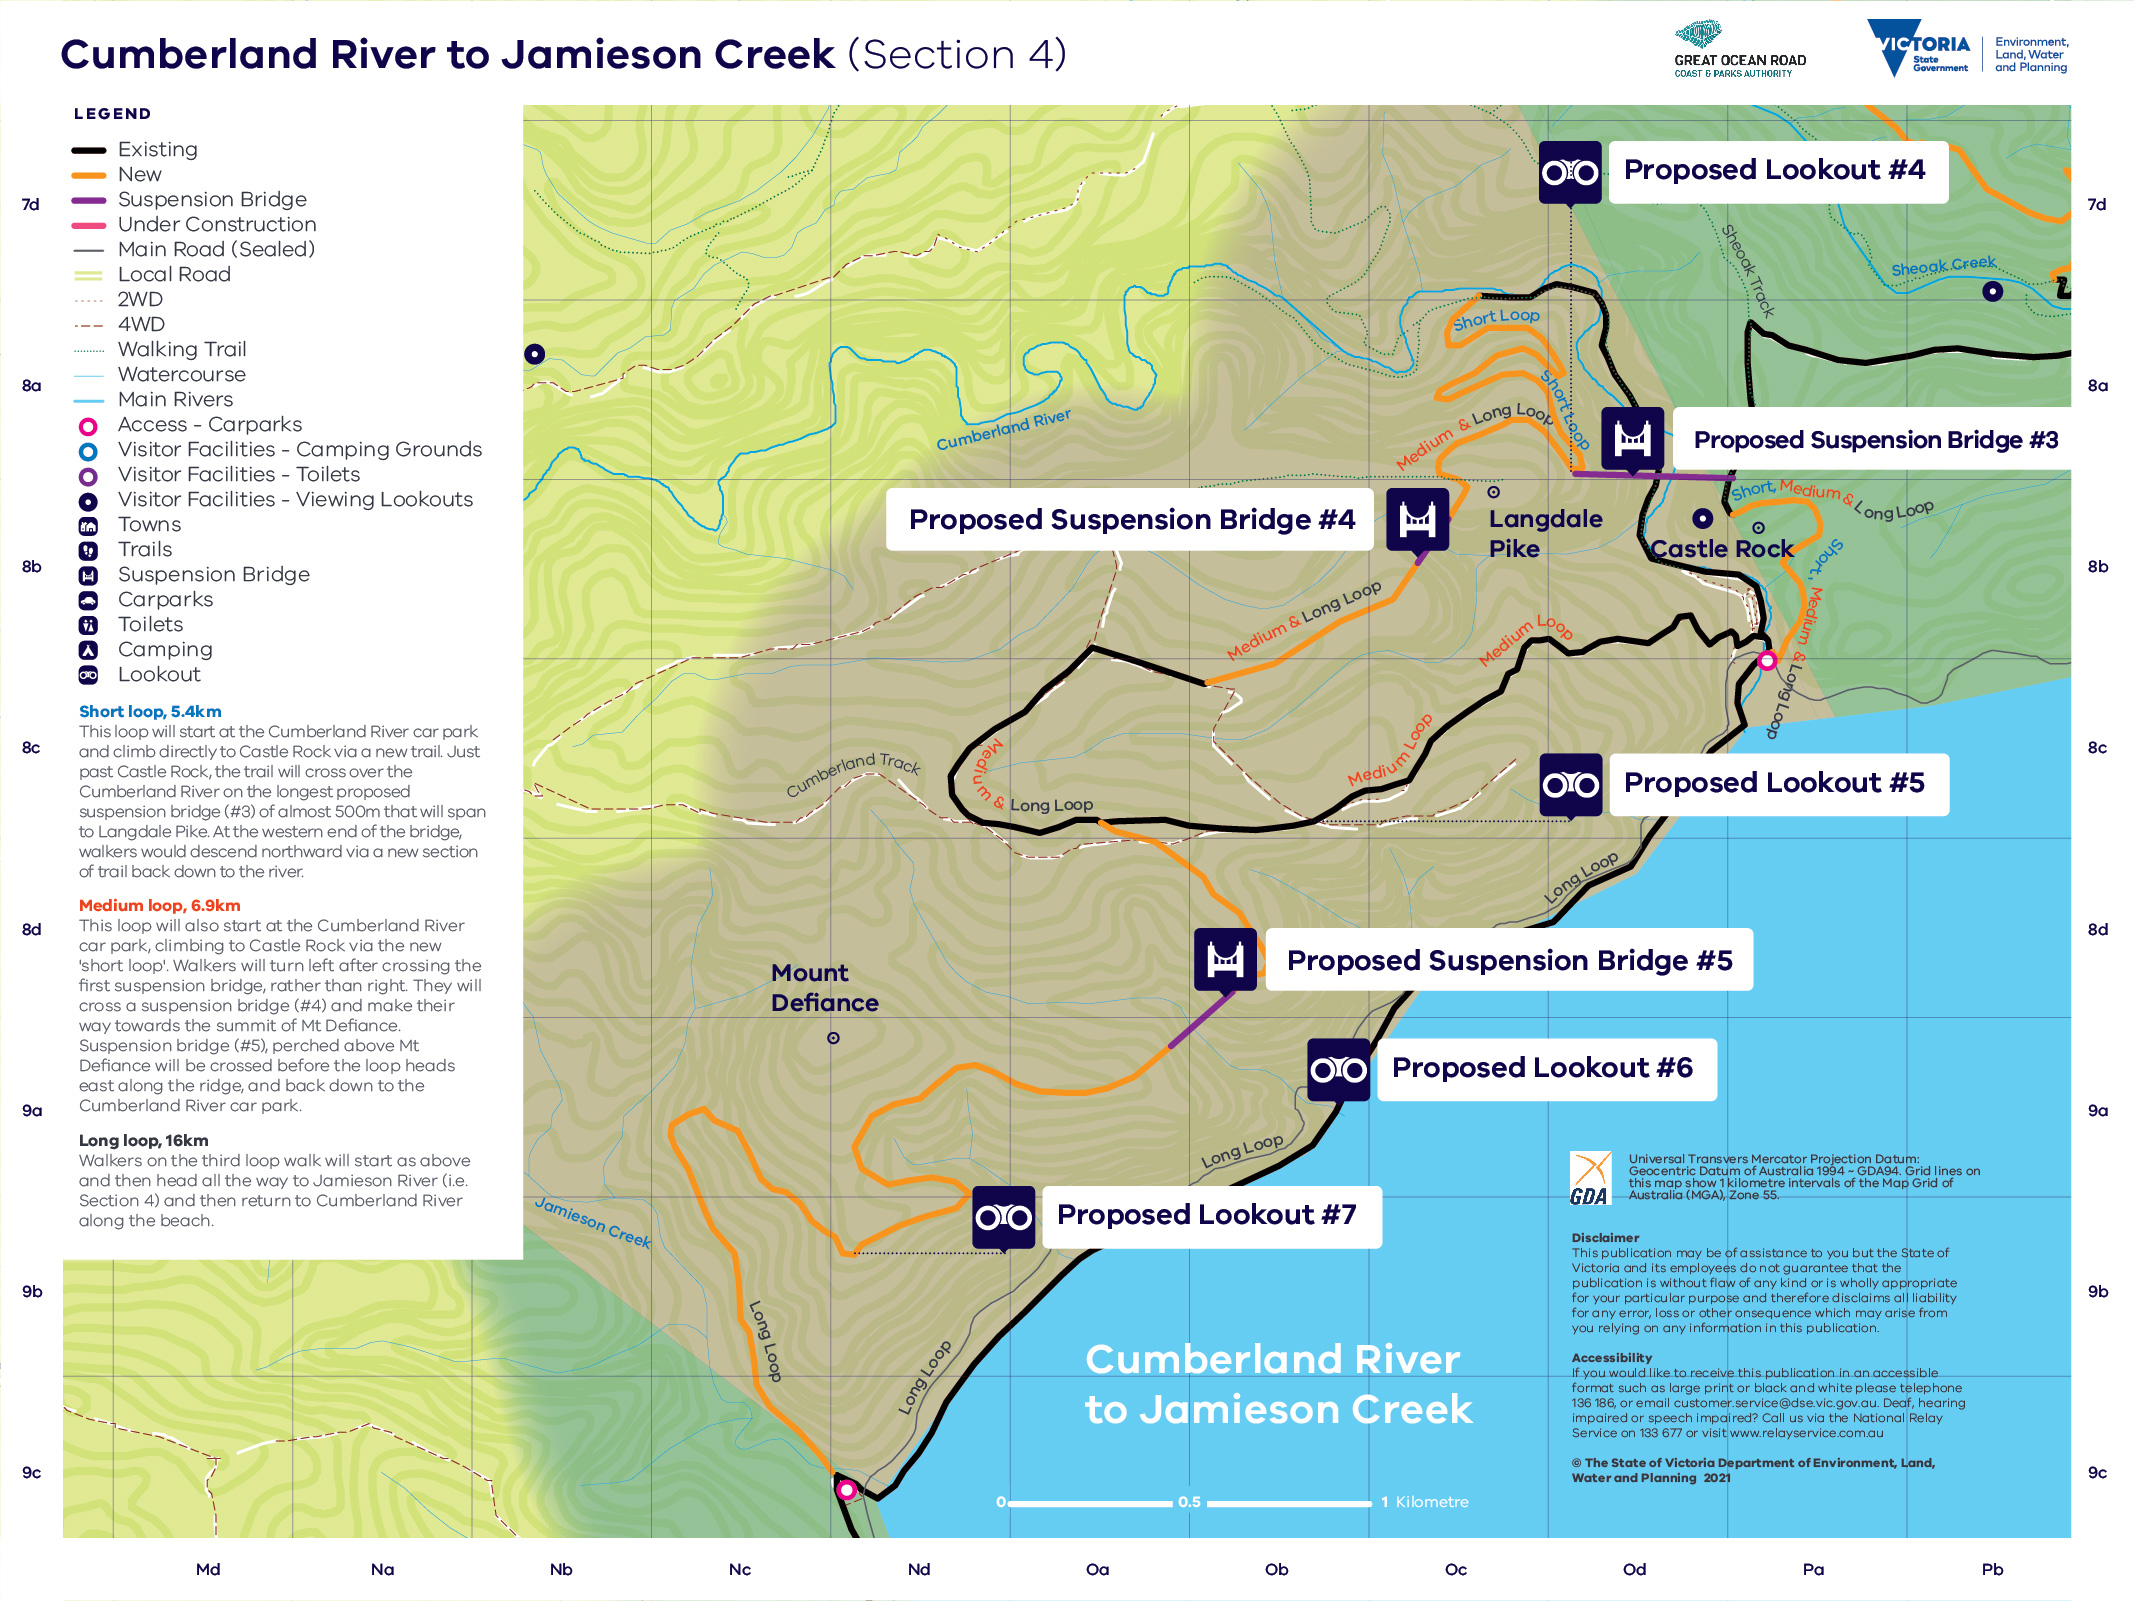 Map showing the route for trail section 4 from Cumberland River to Jamieson Creek